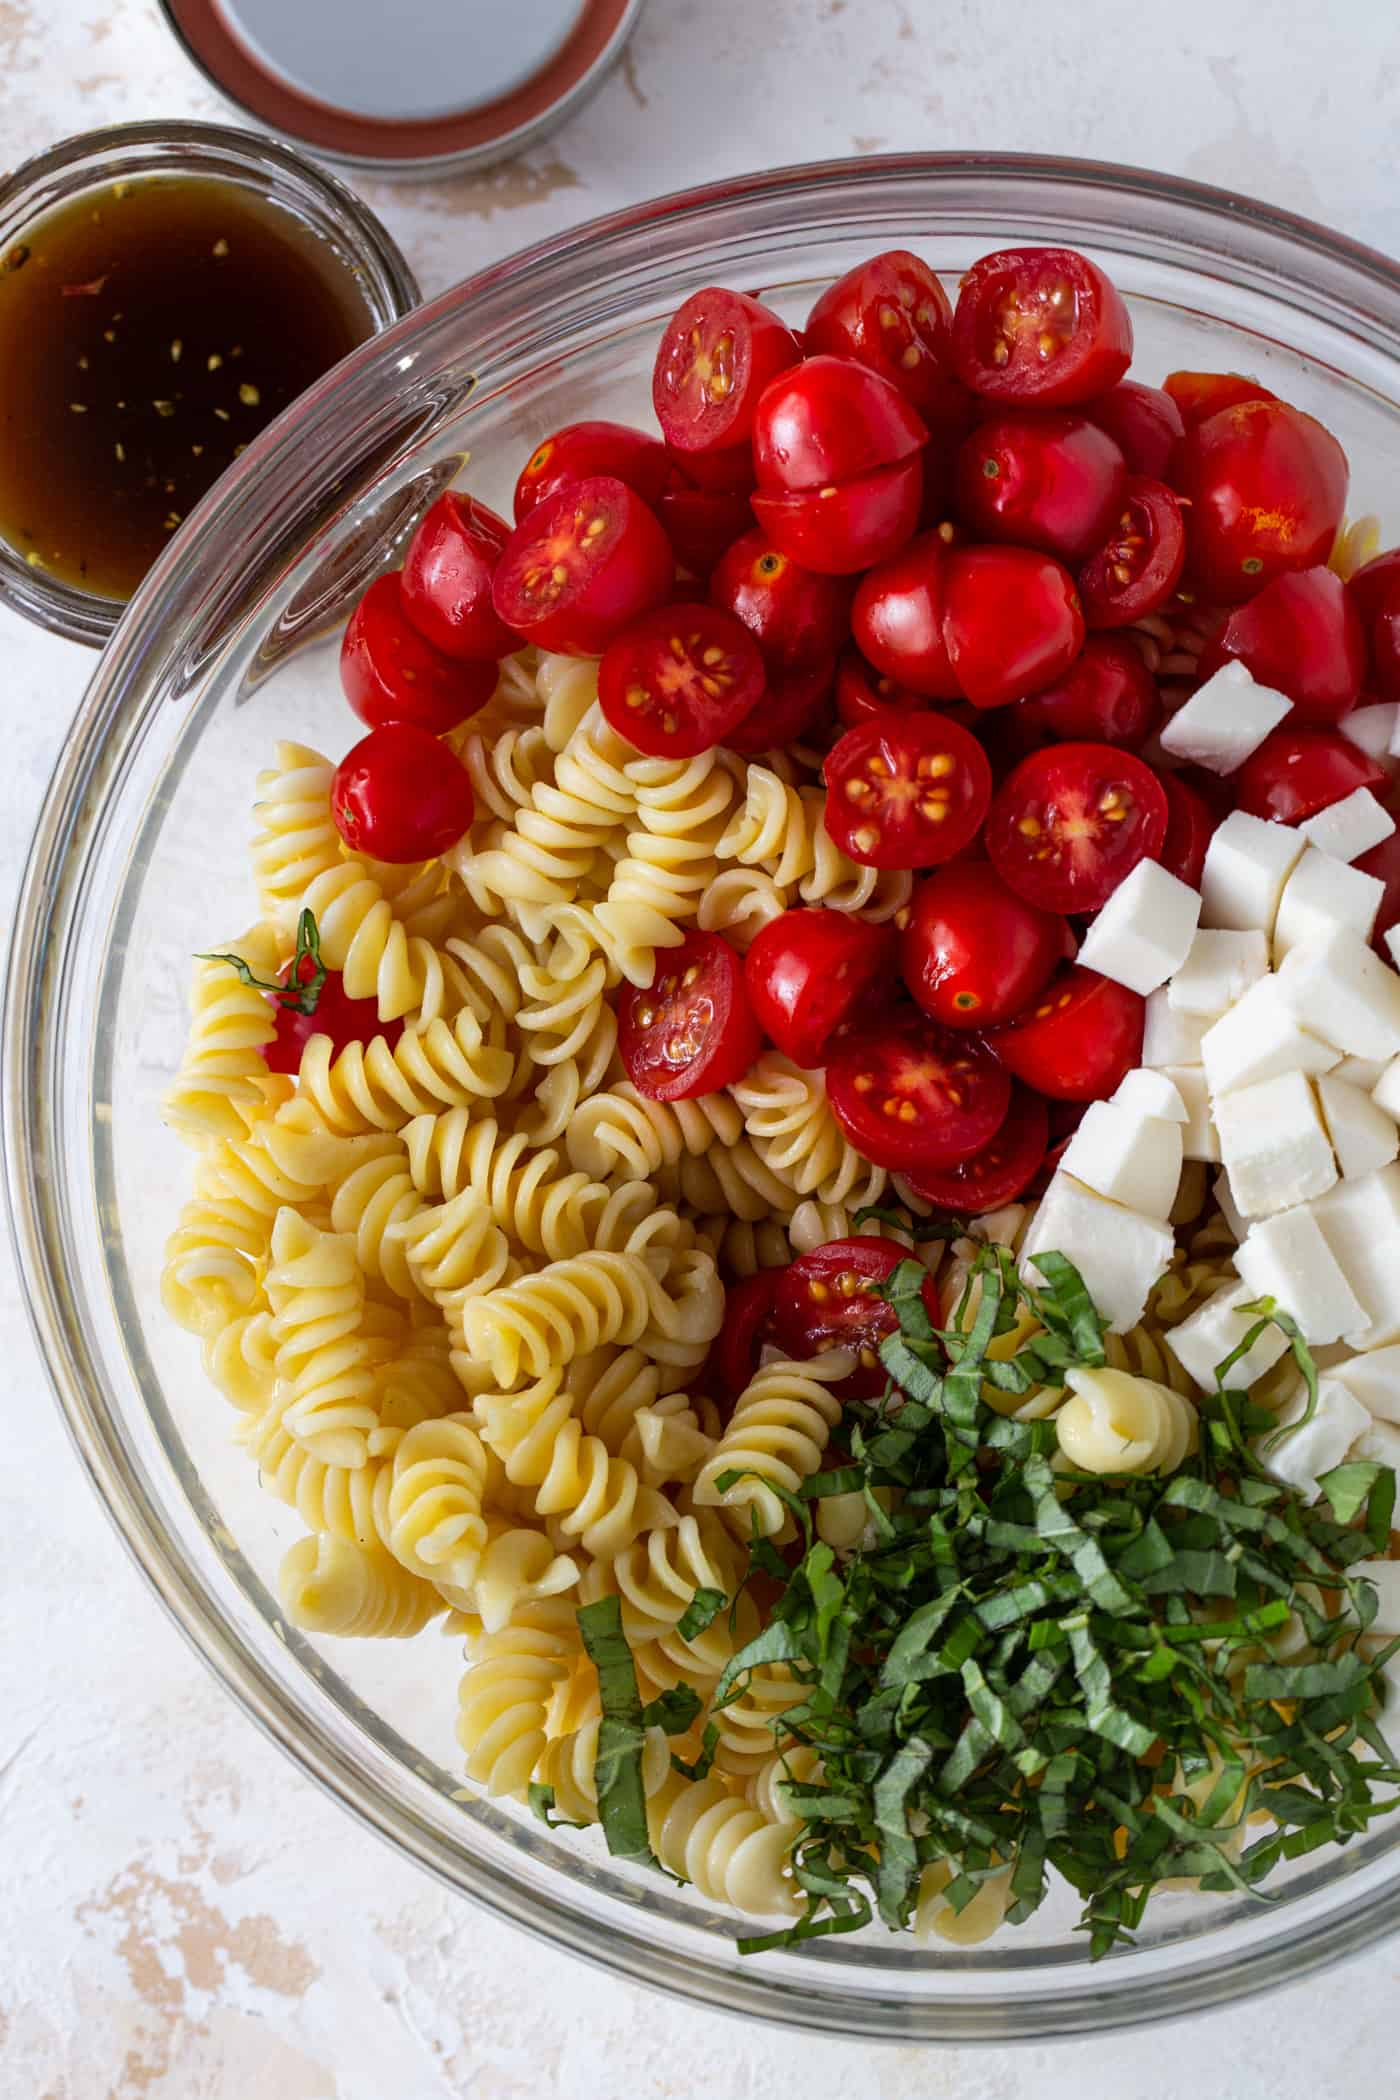 Glass mixing bowl filled with rotini pasta, cherry tomatoes, fresh basil and diced mozzarella.